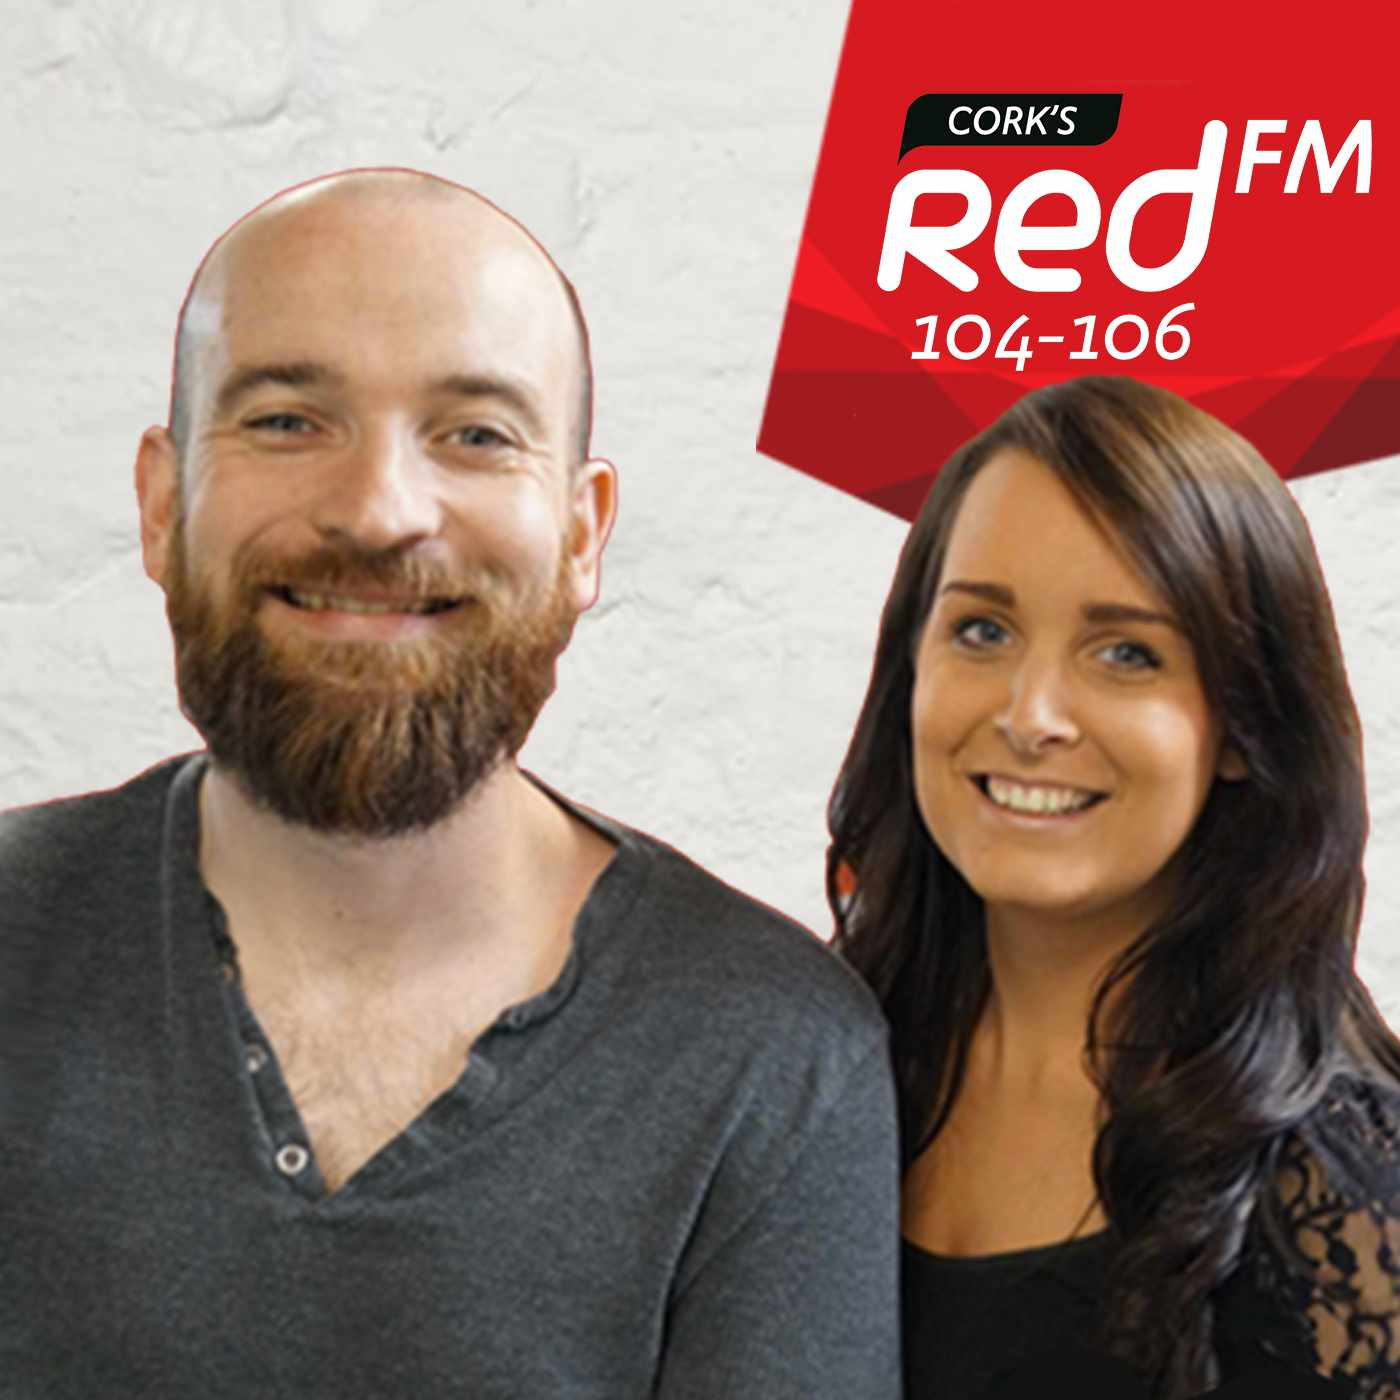 The Big Red Bench on Cork's RedFM